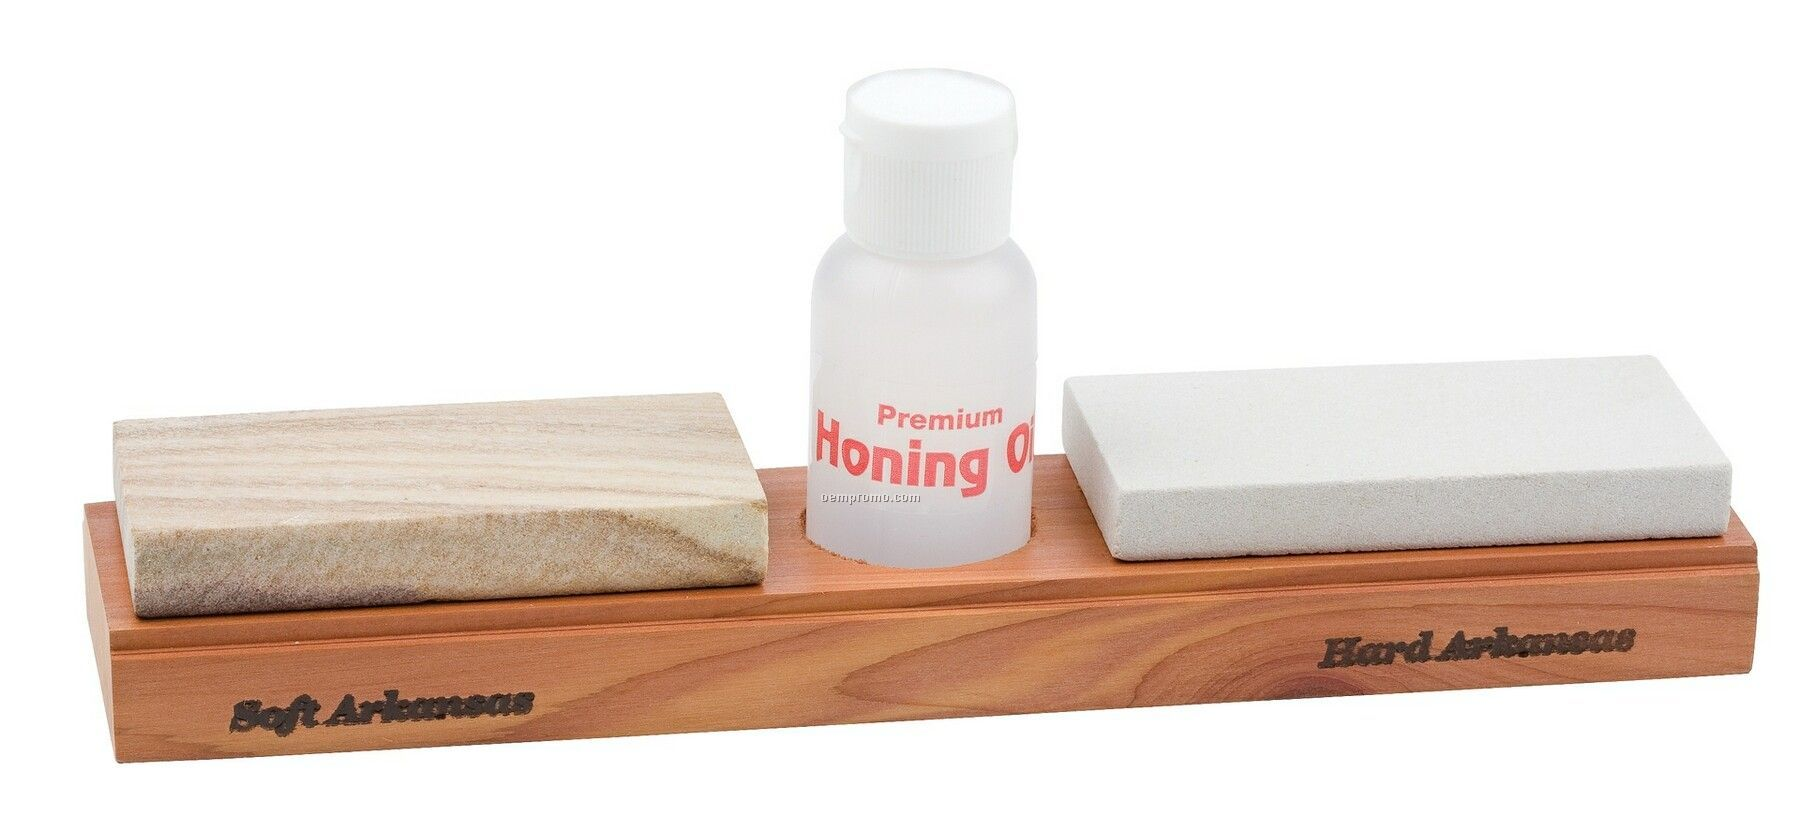 Sharpening Stone With Honing Oil